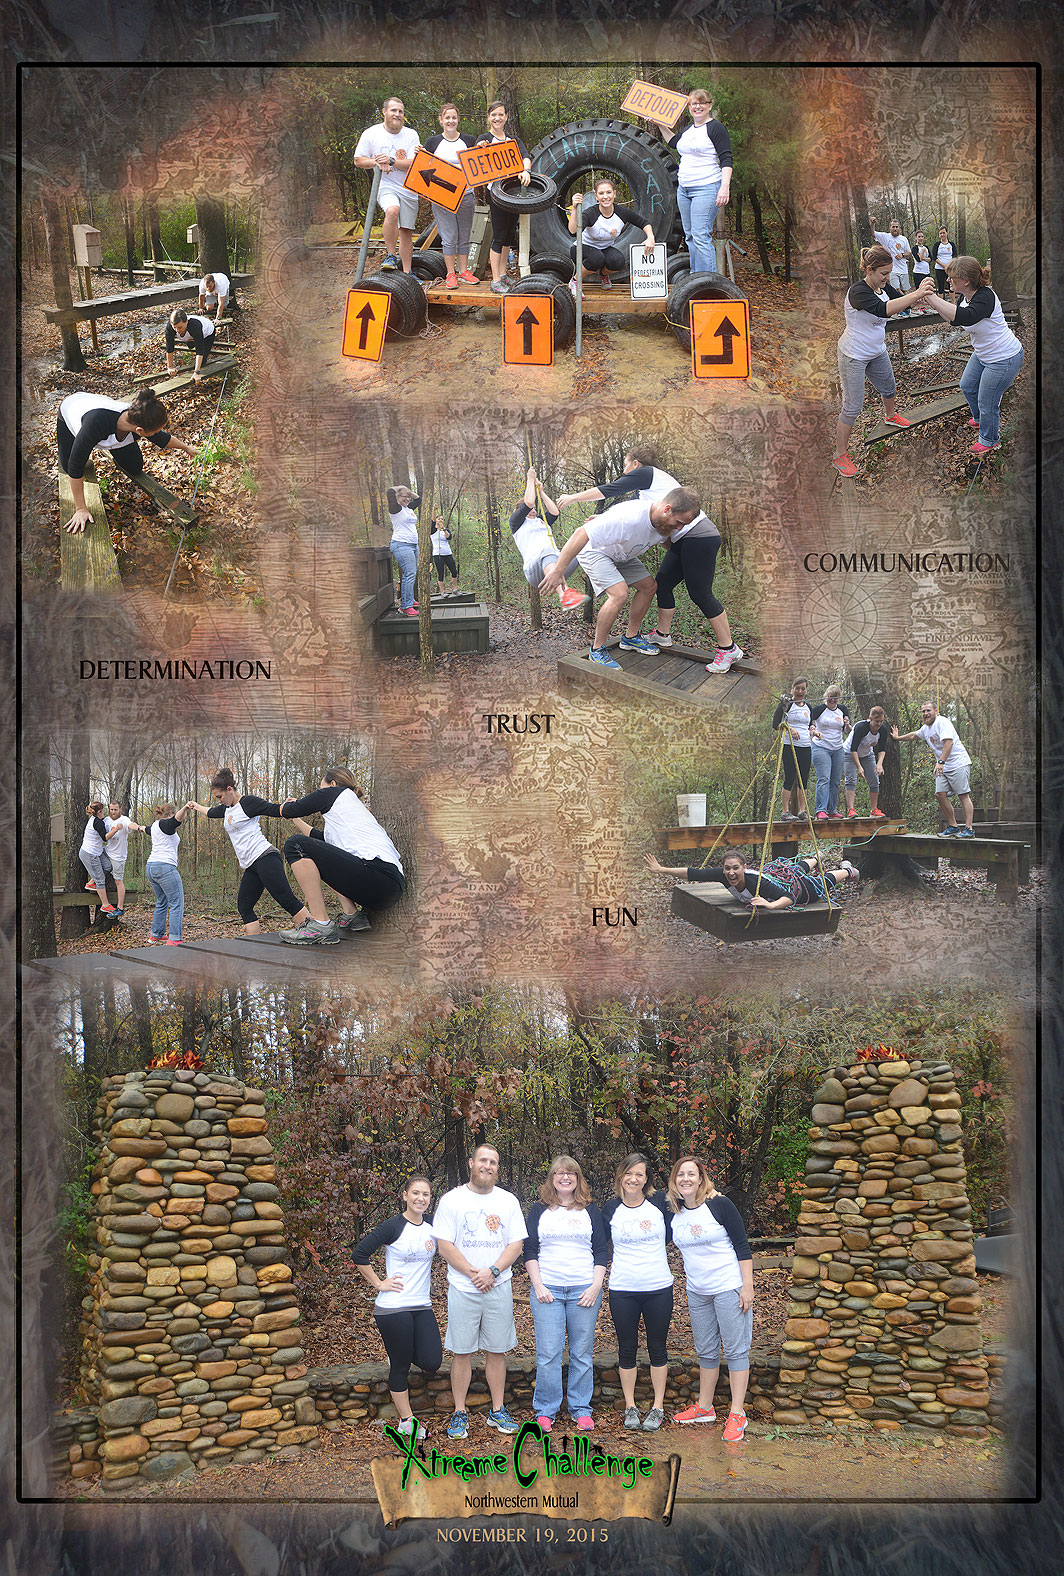 Northwestern Mutual at Xtreeme Challenge Team Building Center in Charlotte North Carolina